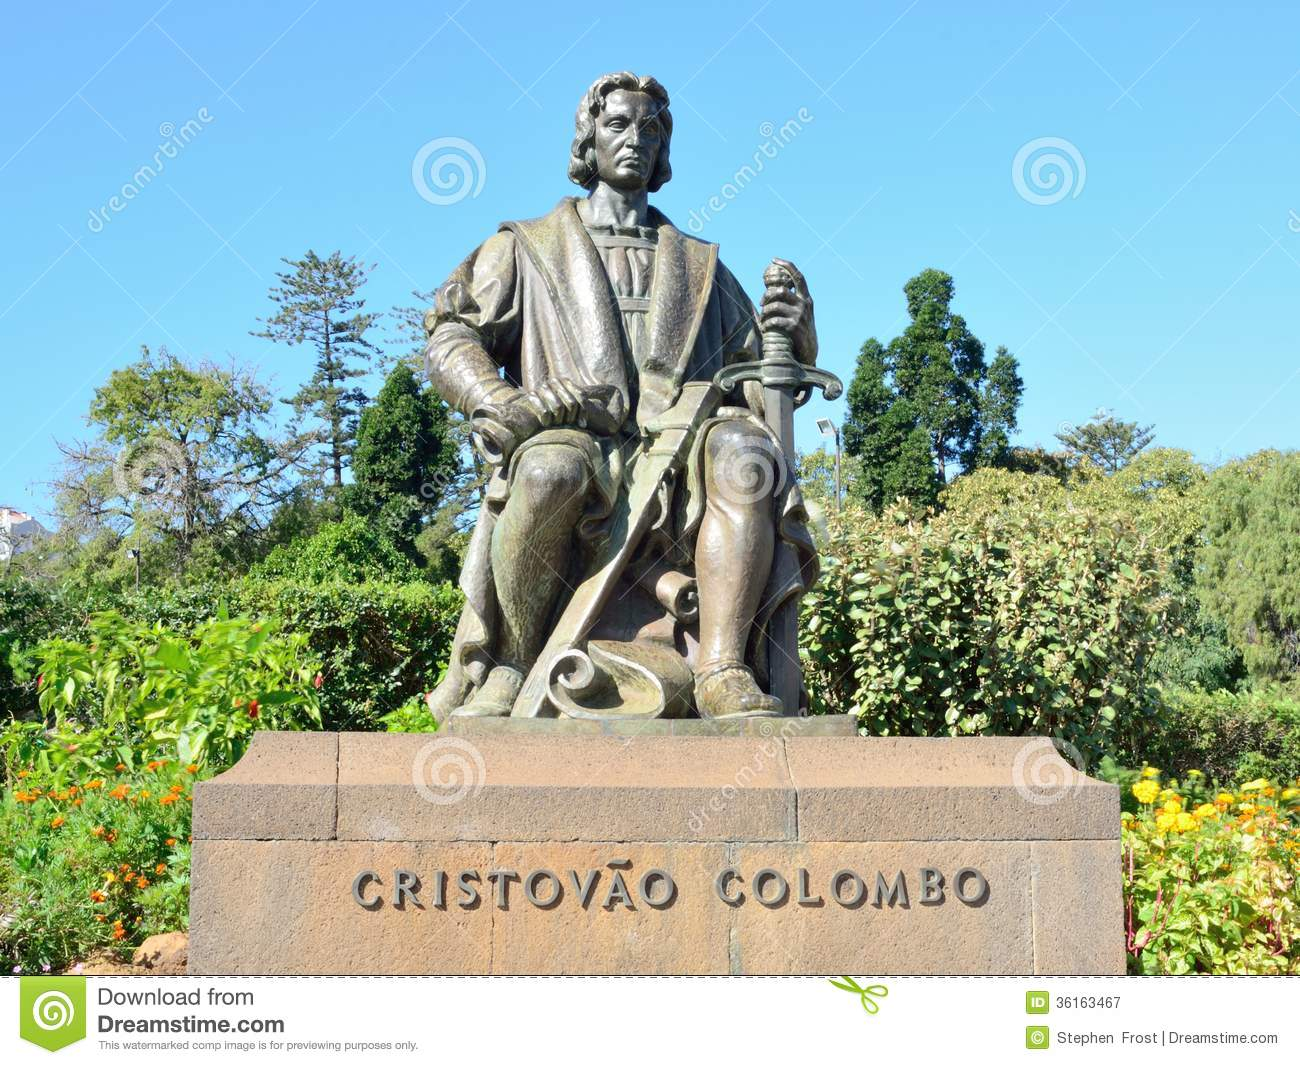 christopher columbus statue stock image image  christopher columbus statue